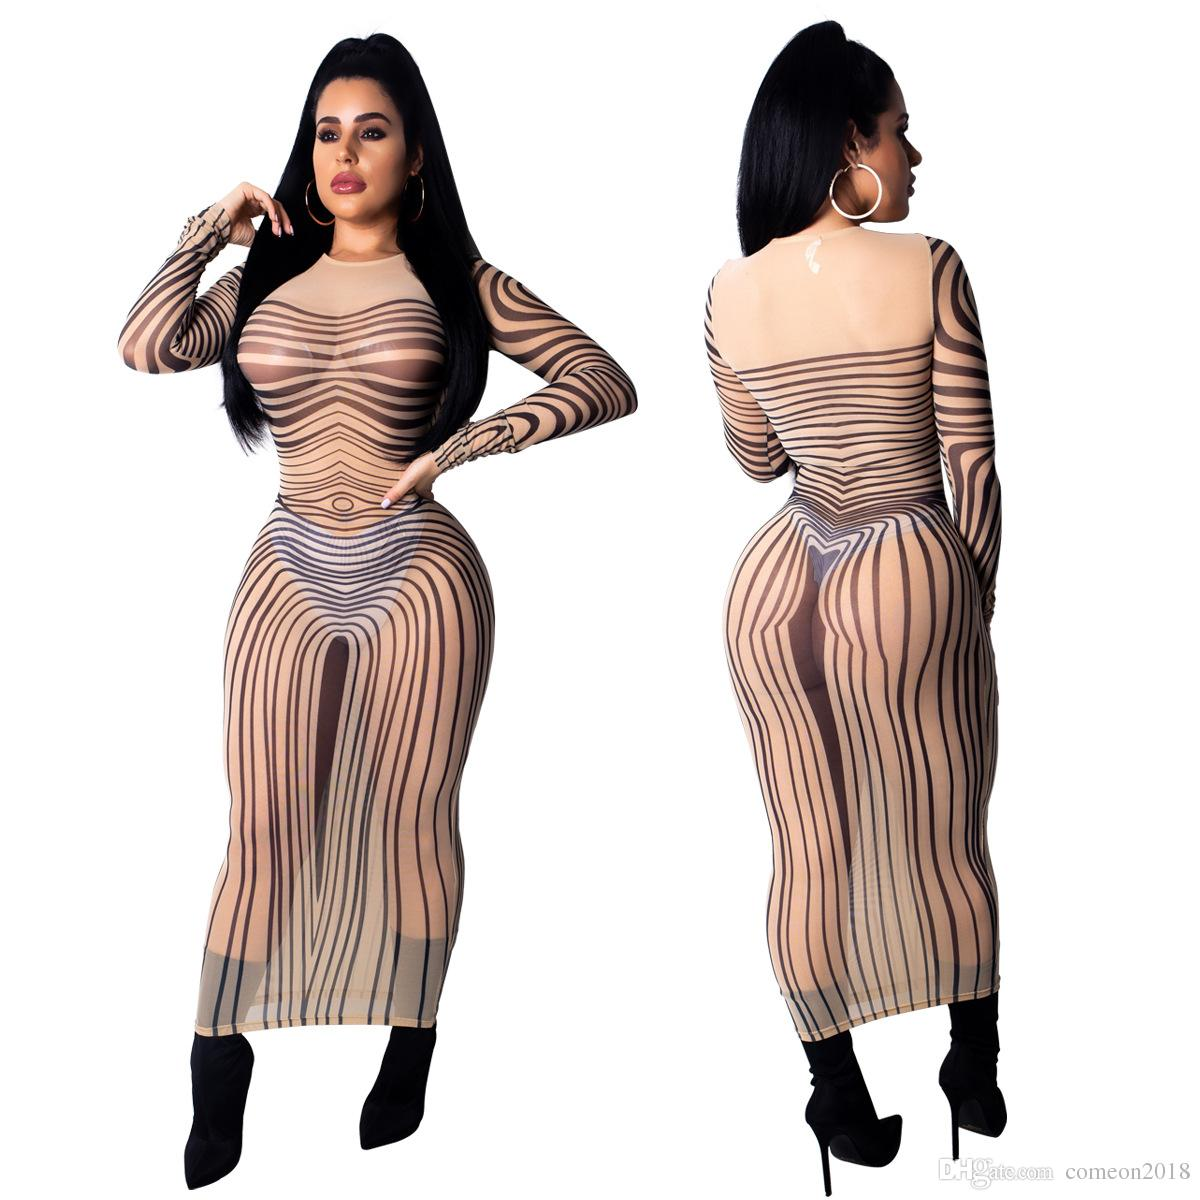 Women Clothes Fashion Designer Party Dress Bodysuits Dresses Ladies Sexy Party Bodycon Night Club See Through Striped Dresses Vestidos Black Tie Dresses Celebrity Dresses From Comeon2018 13 84 Dhgate Com